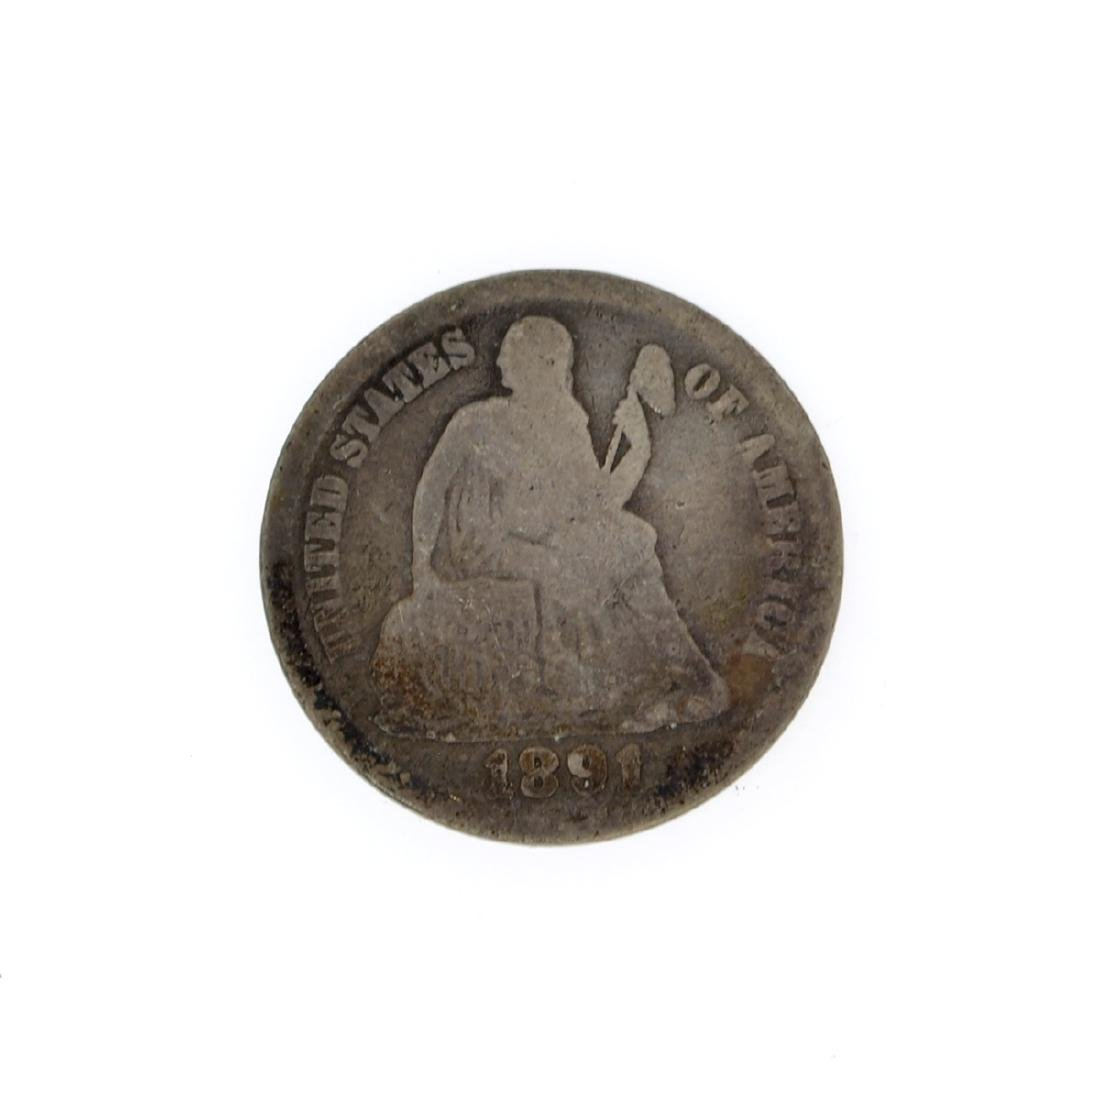 Rare 1891 Liberty Seated Dime Coin